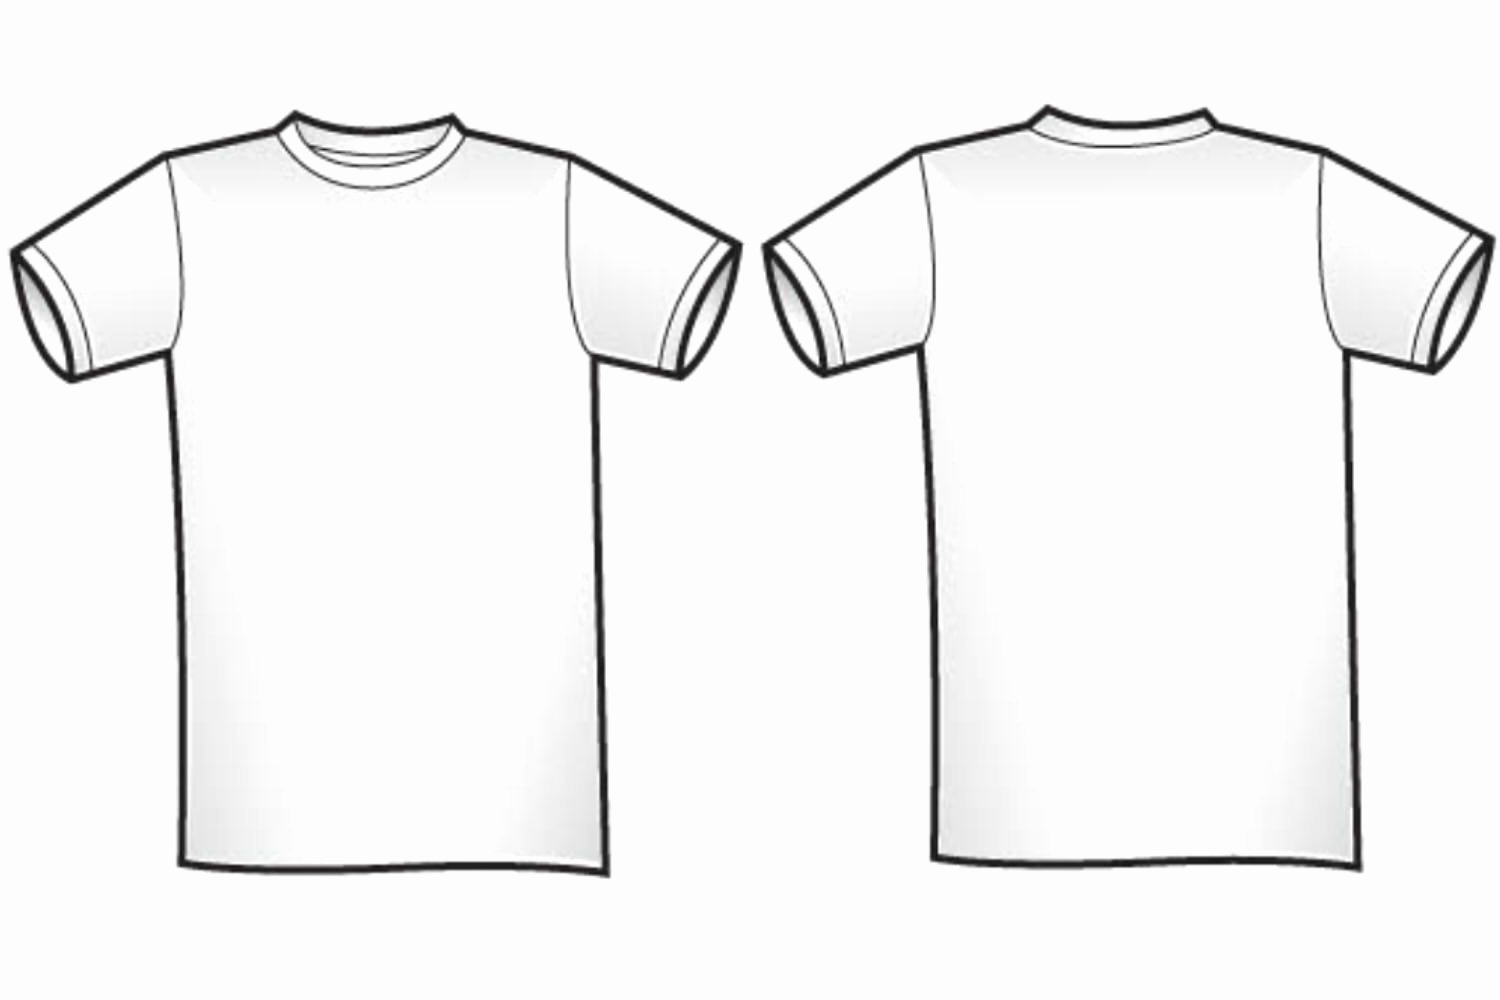 Free T Shirt Template New Free Blank T Shirt Outline Download Free Clip Art Free